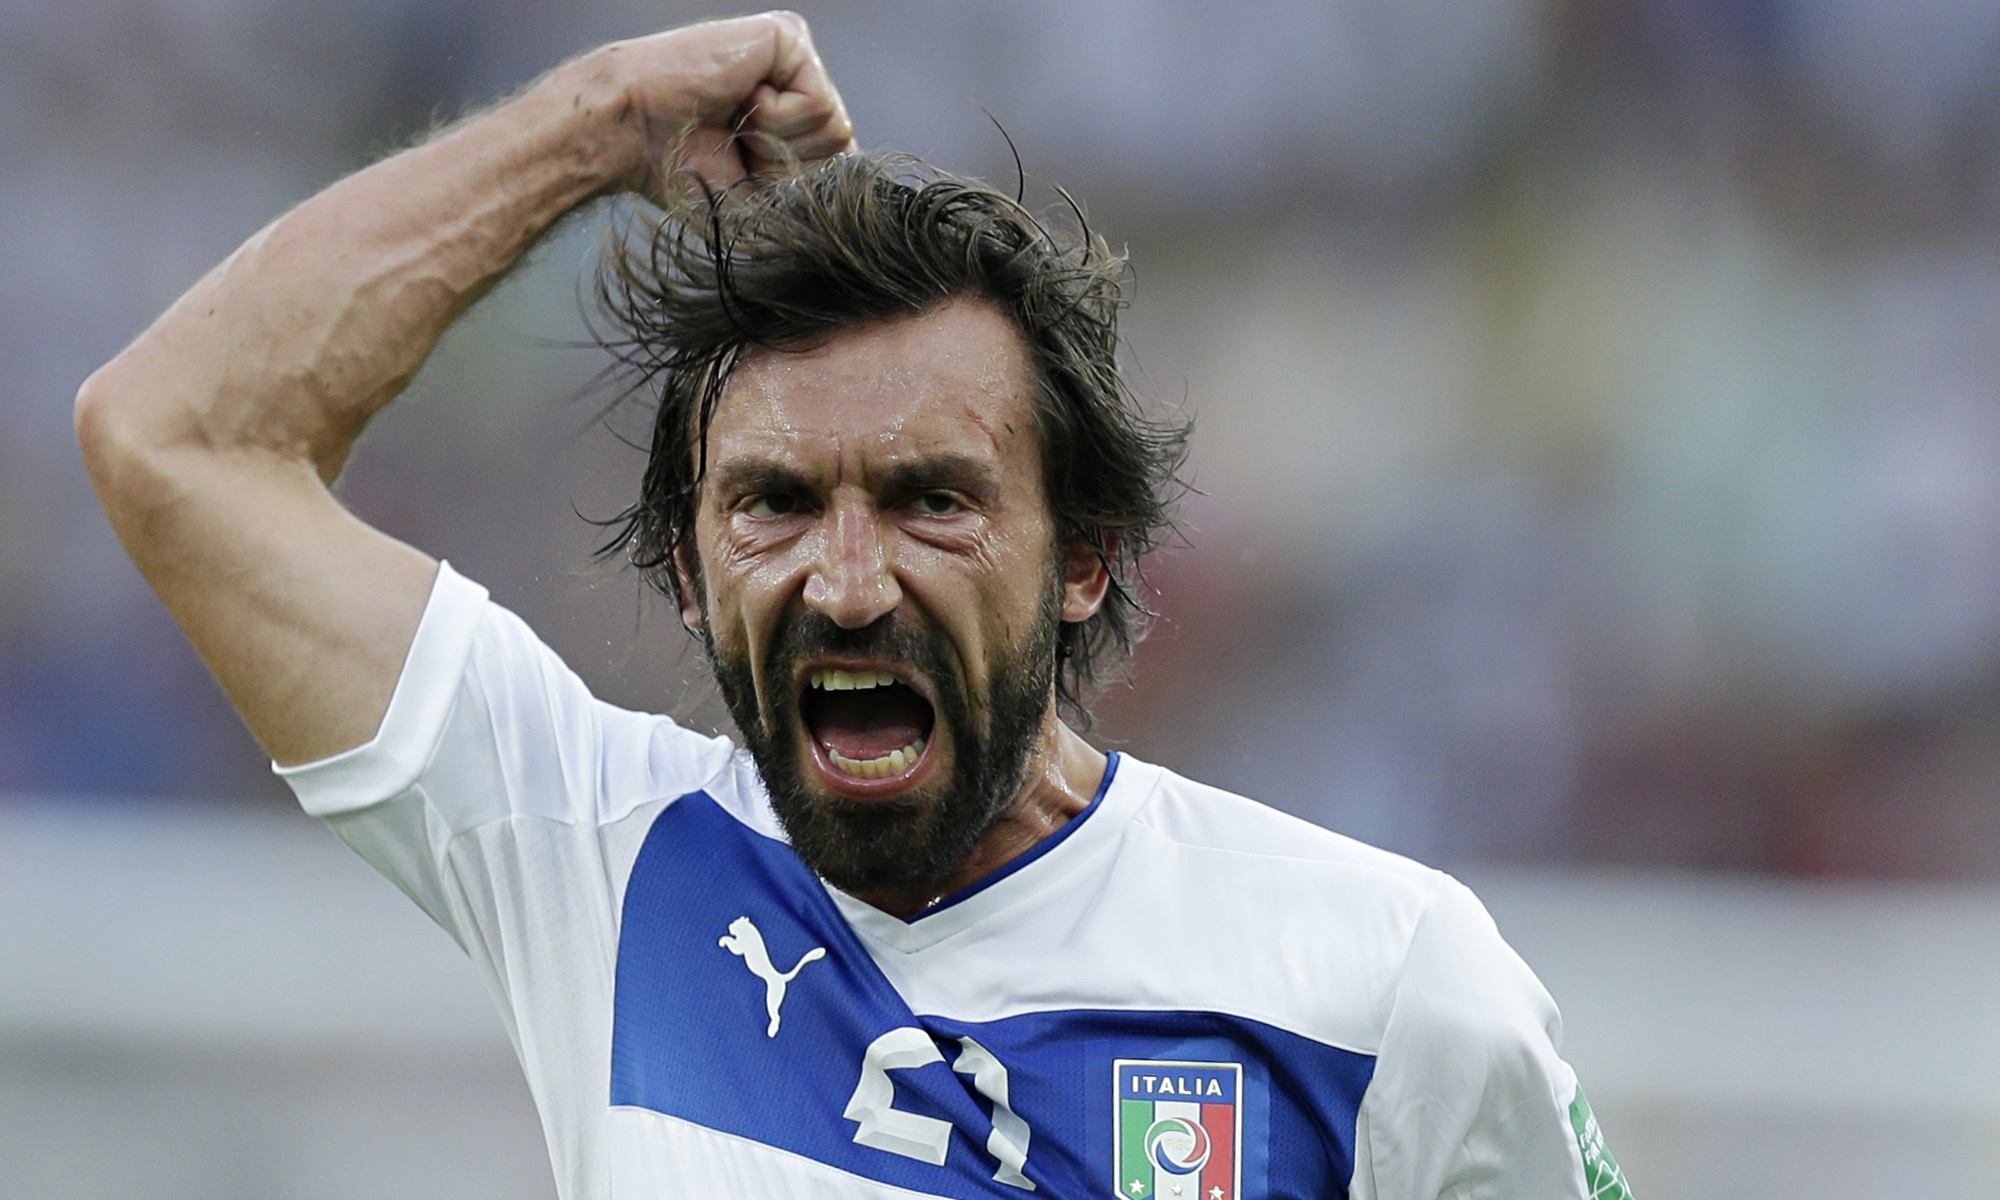 andrea pirlo How much is andrea pirlo worth in 2018 check out the football player his net worth, salary, houses & cars on muzul where does he live and what does andrea pirlo own, earn & drive at age.